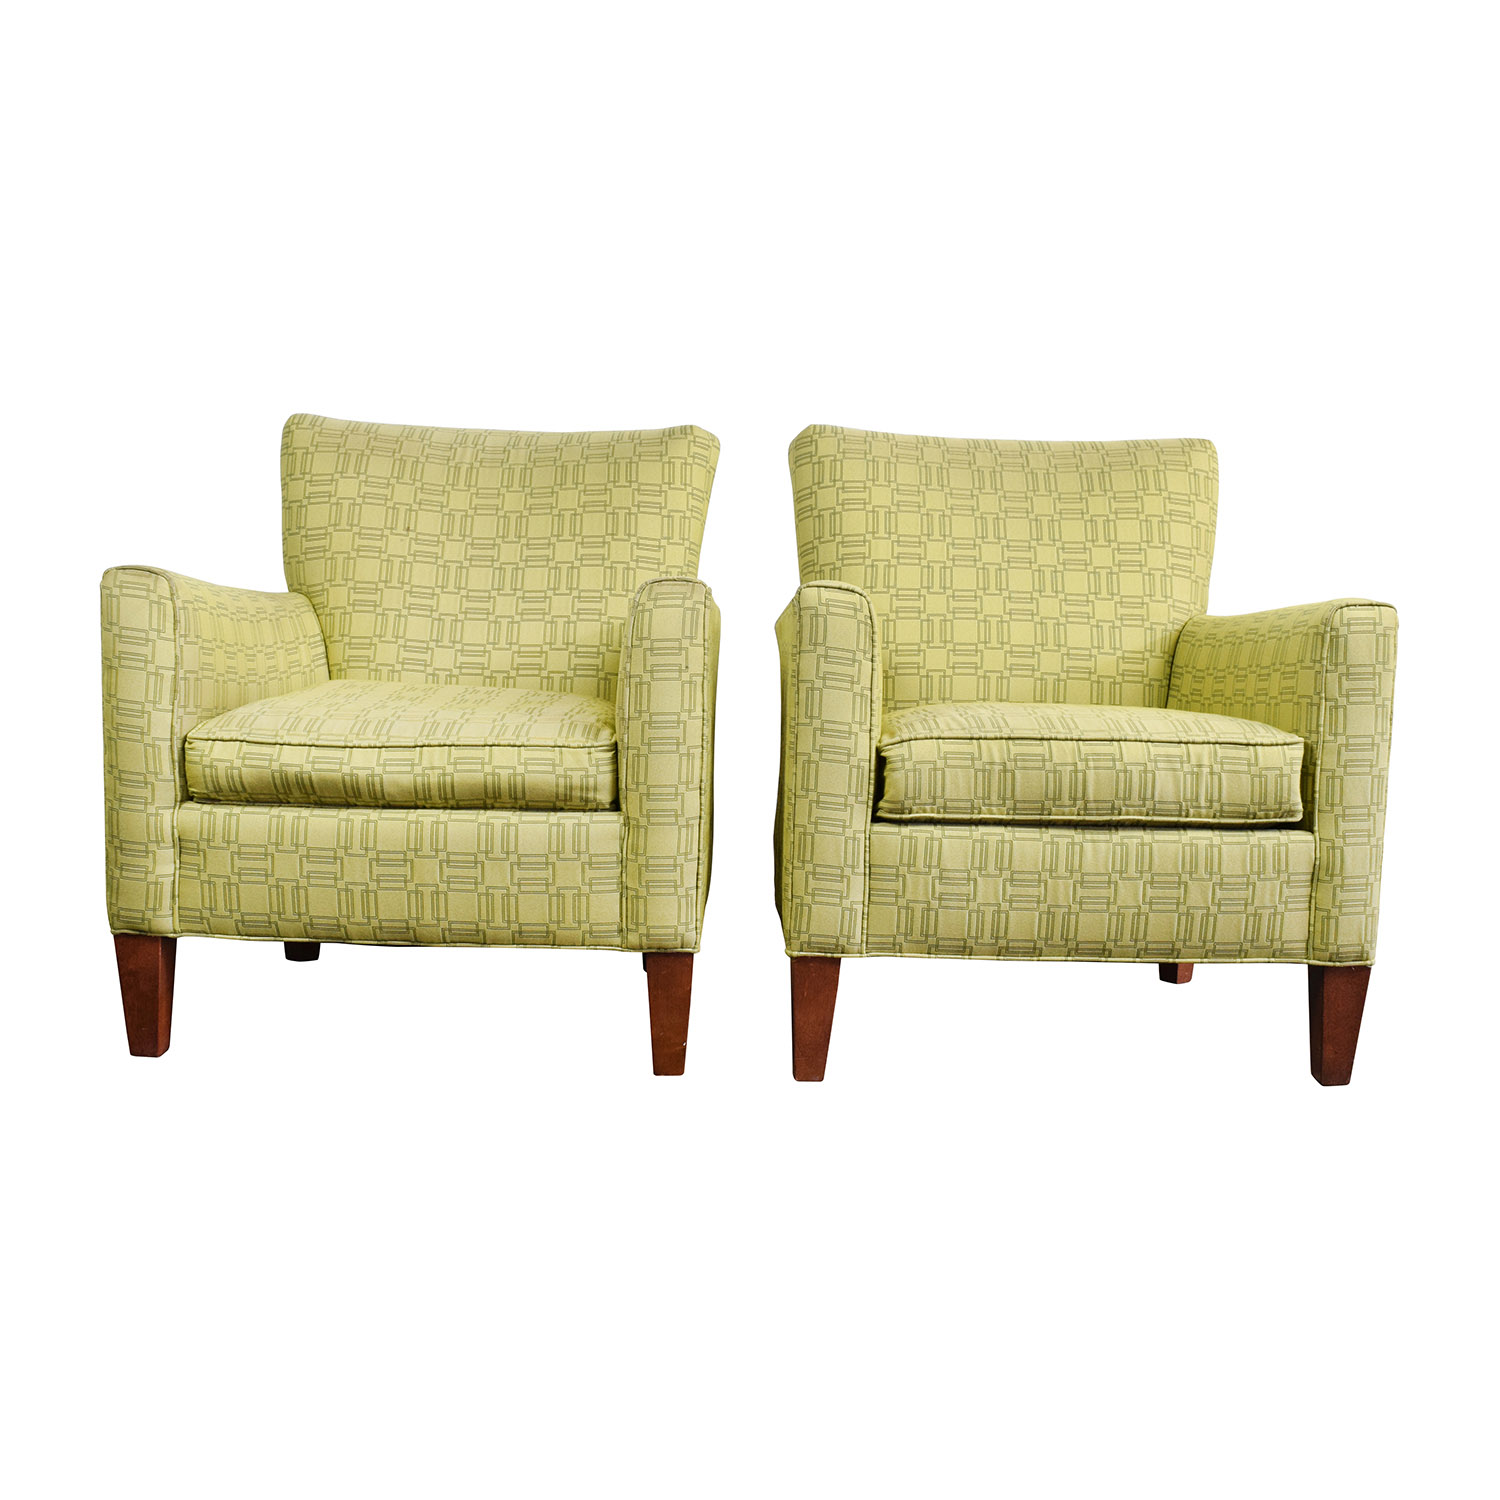 ethan allen recliners chairs zero gravity chair gander mountain 90 off green upholstered accent